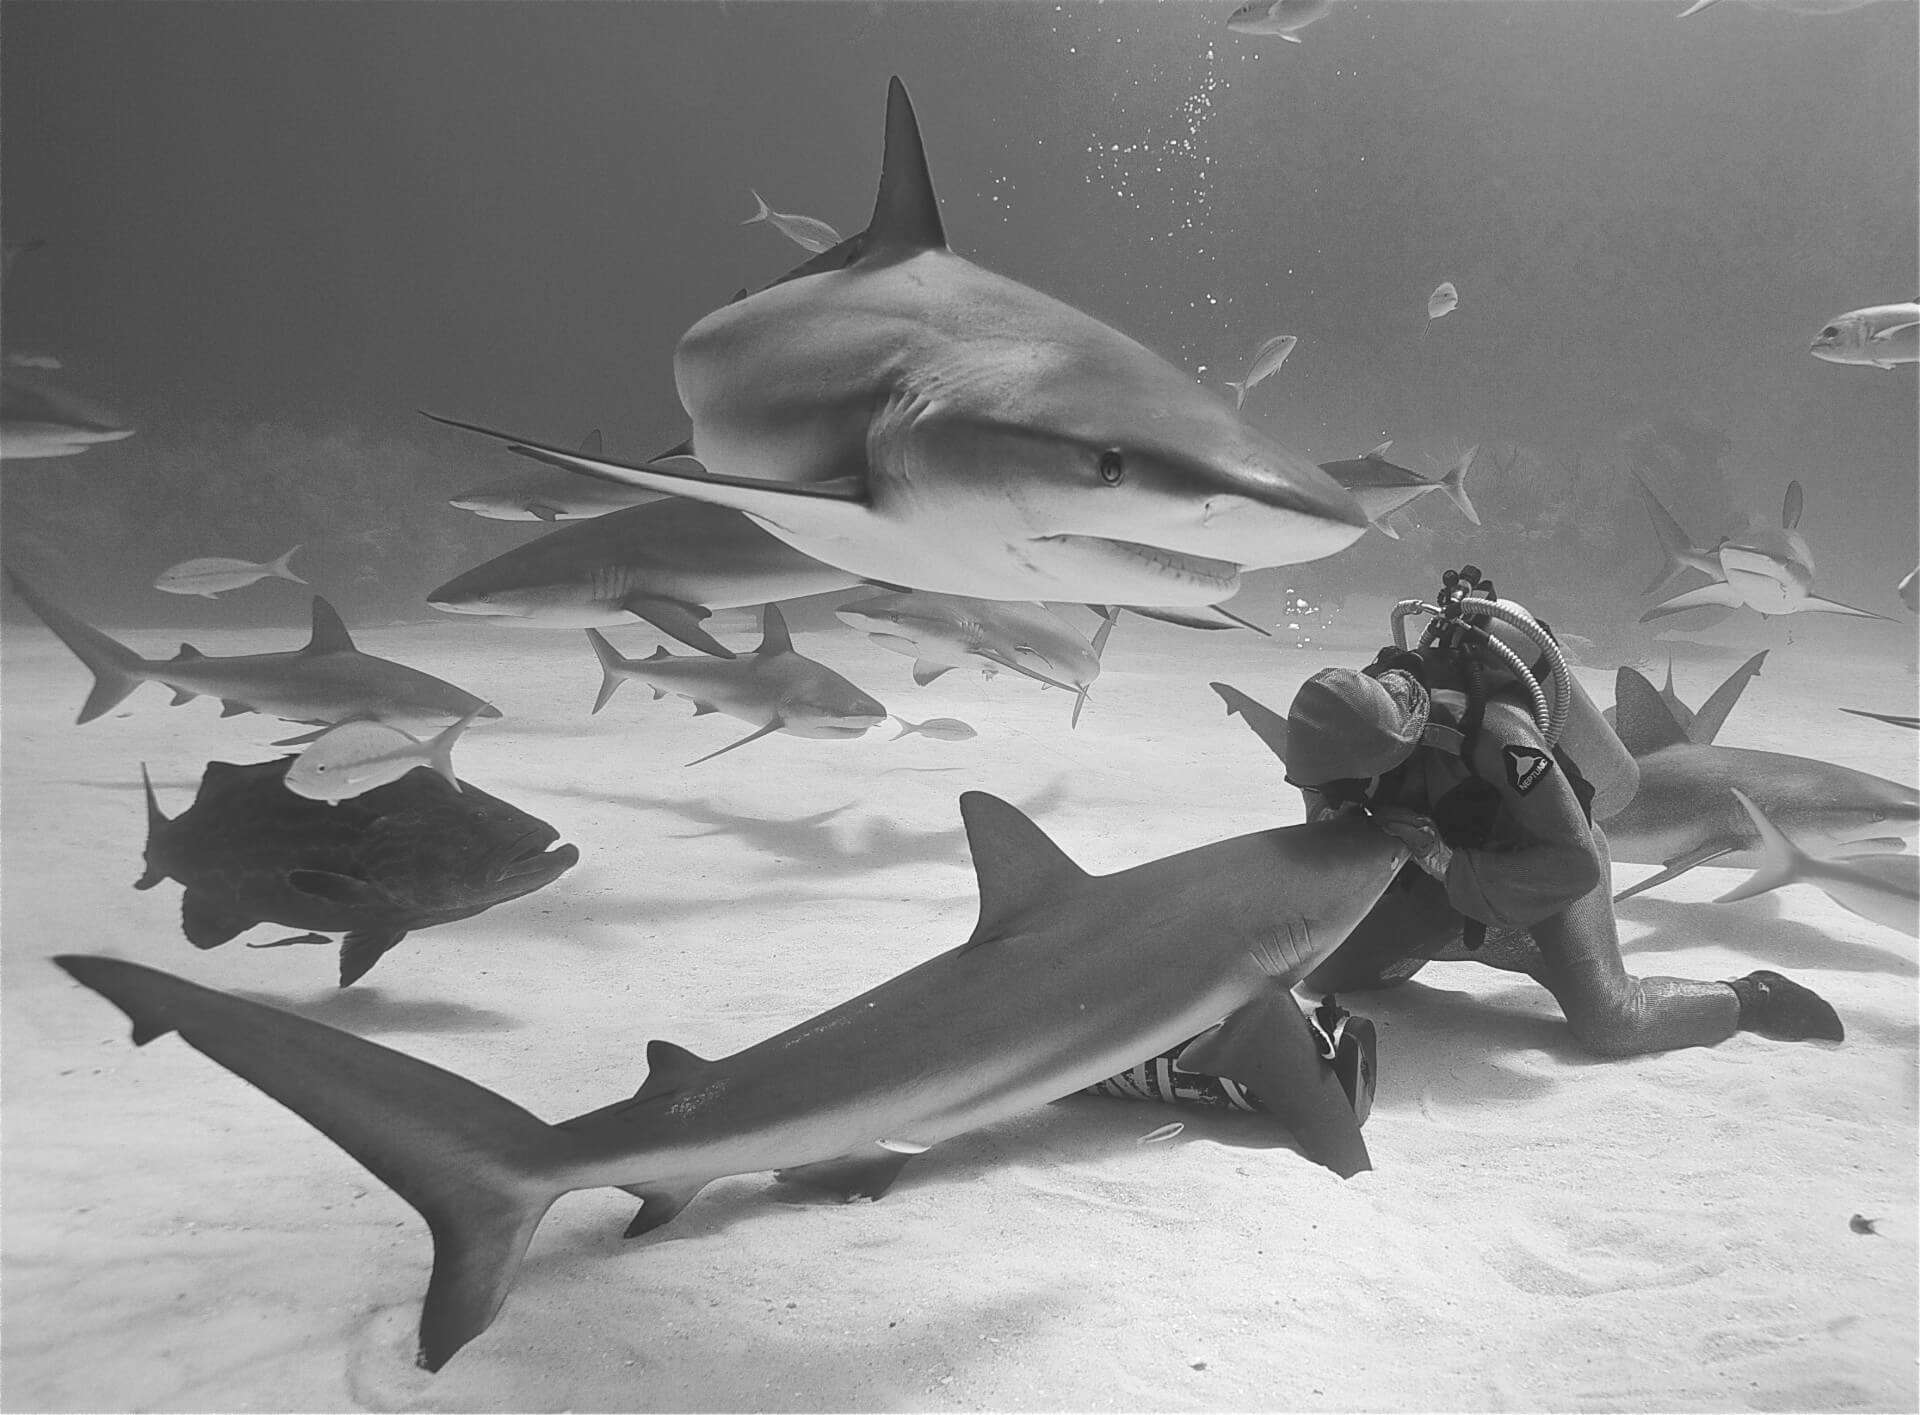 Cristina Zenato—Fierce Female Shark Professional and Ocean Entrepreneur 1